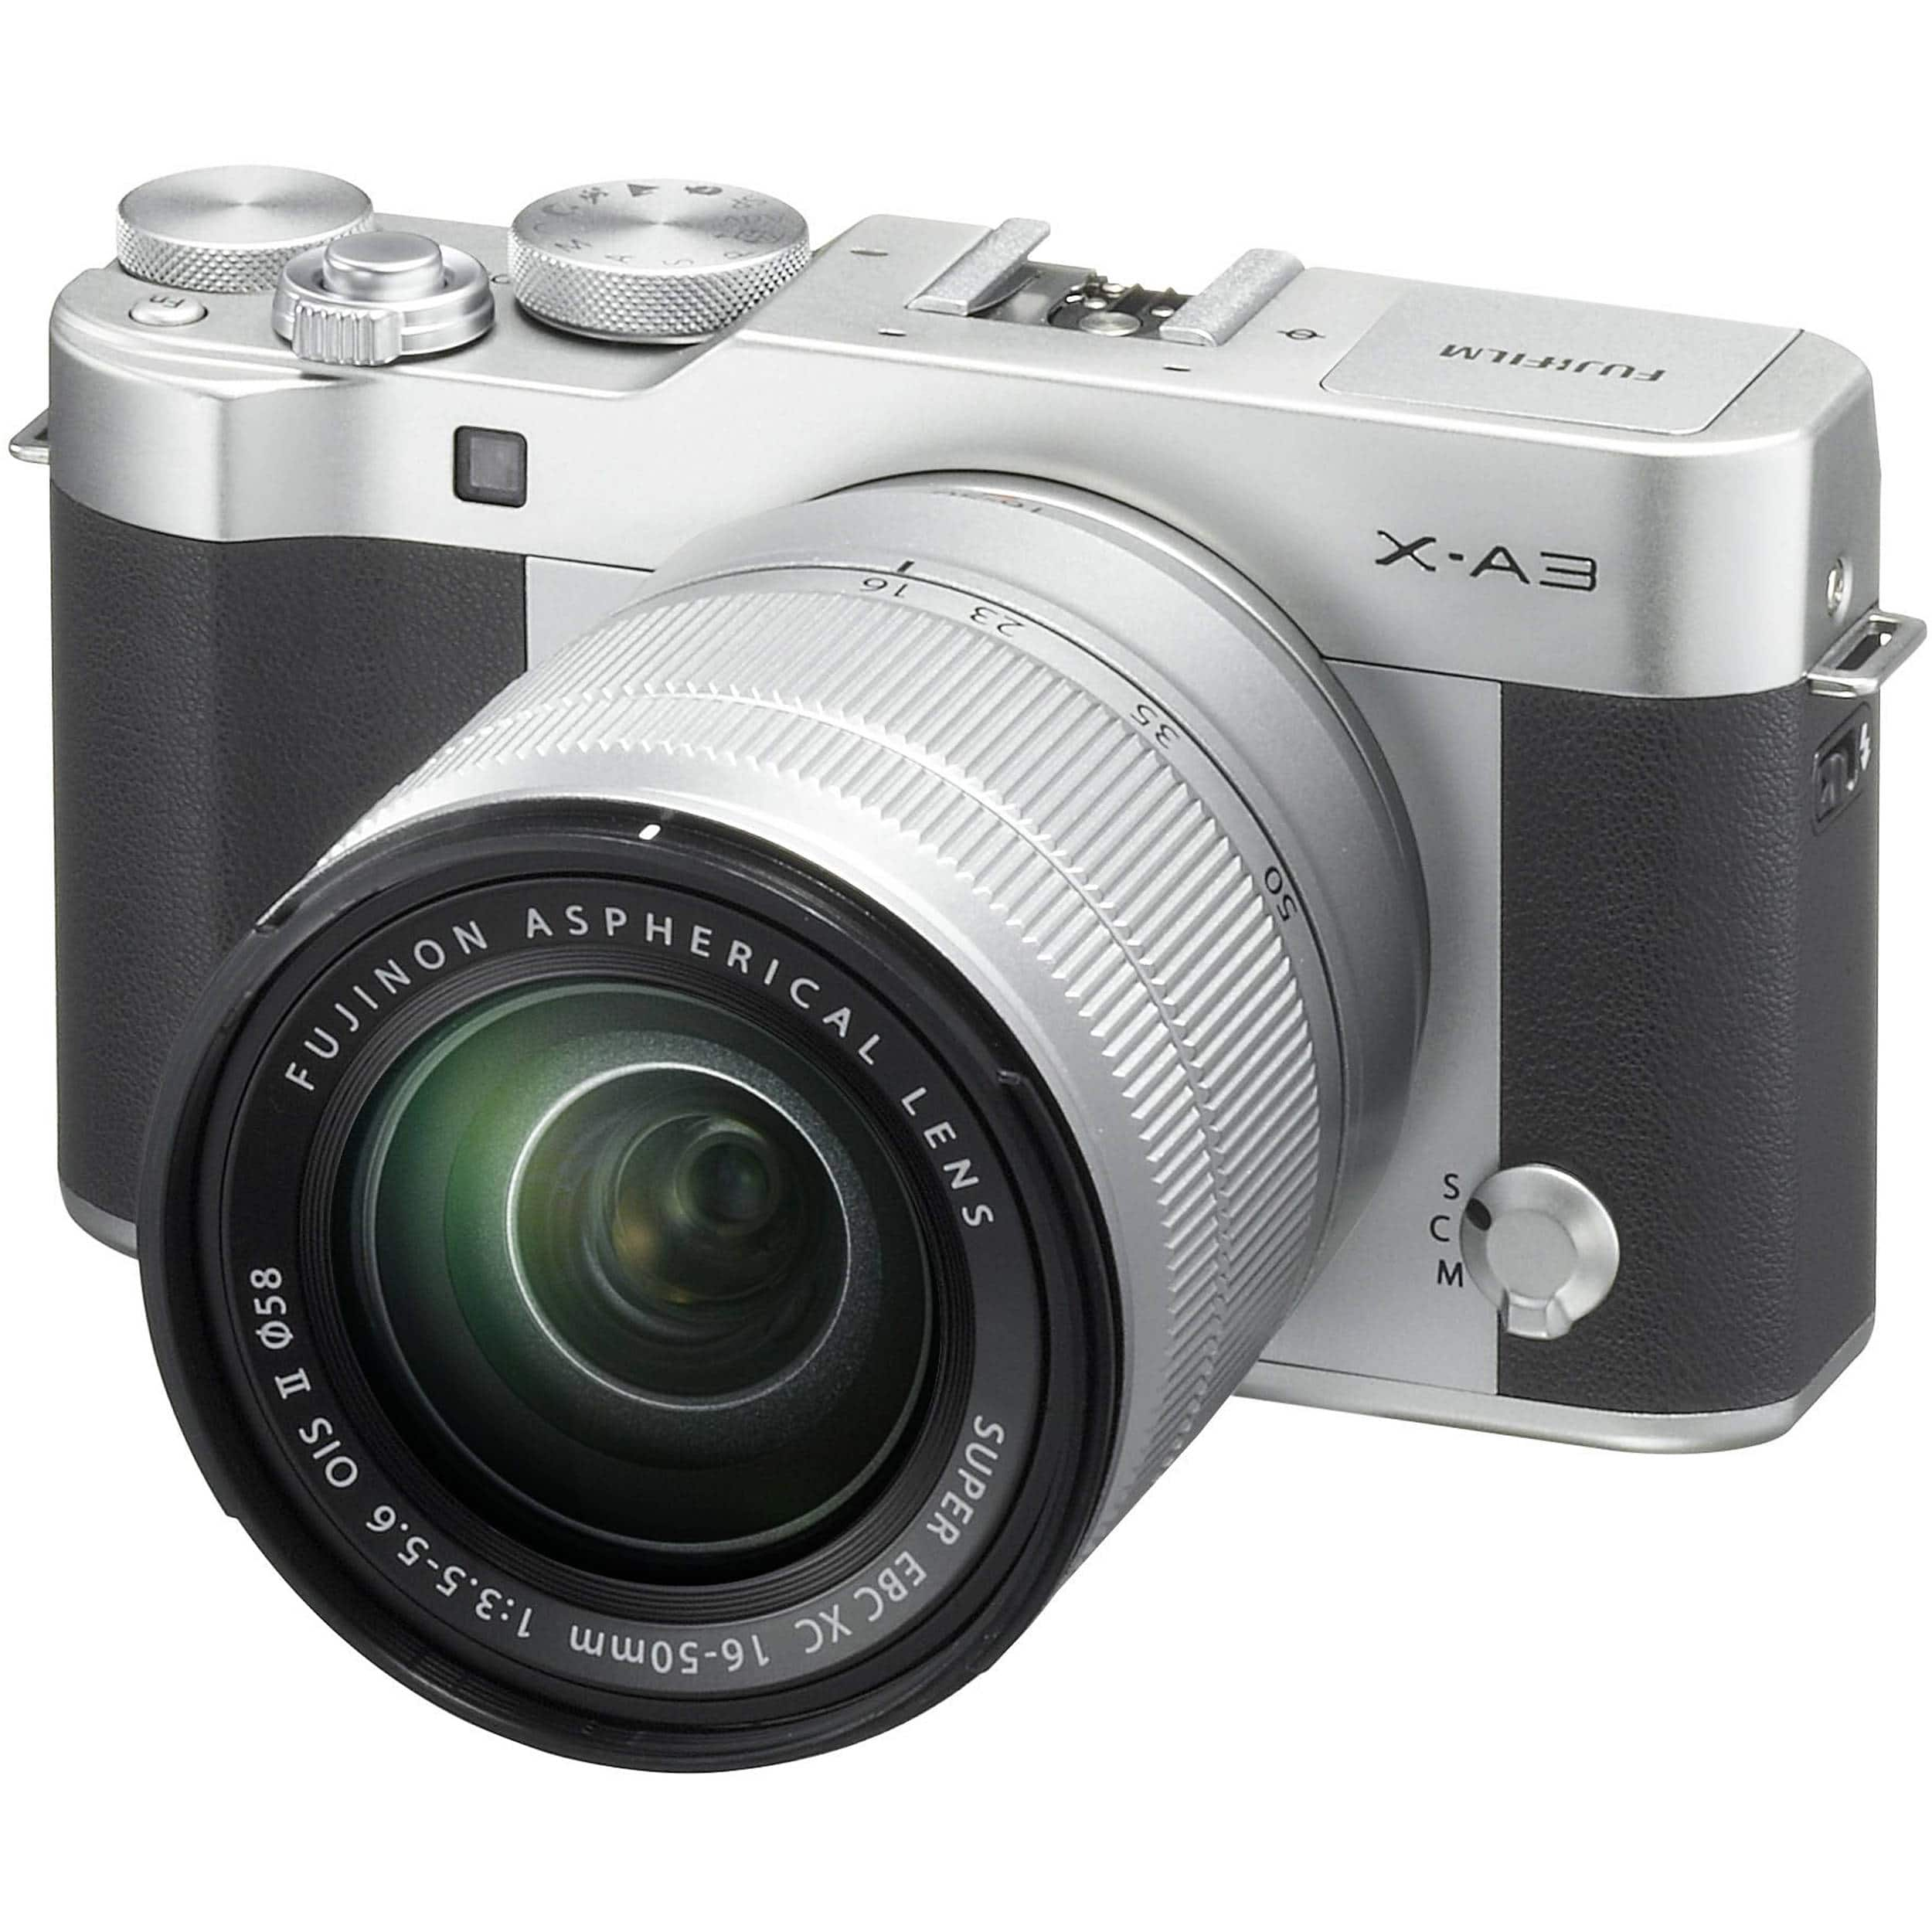 Fujifilm X-A3 Mirrorless w/ 16-50mm OIS II Lens - $349 + Tax - Free S&H after 25% Off Adorama via Google Express